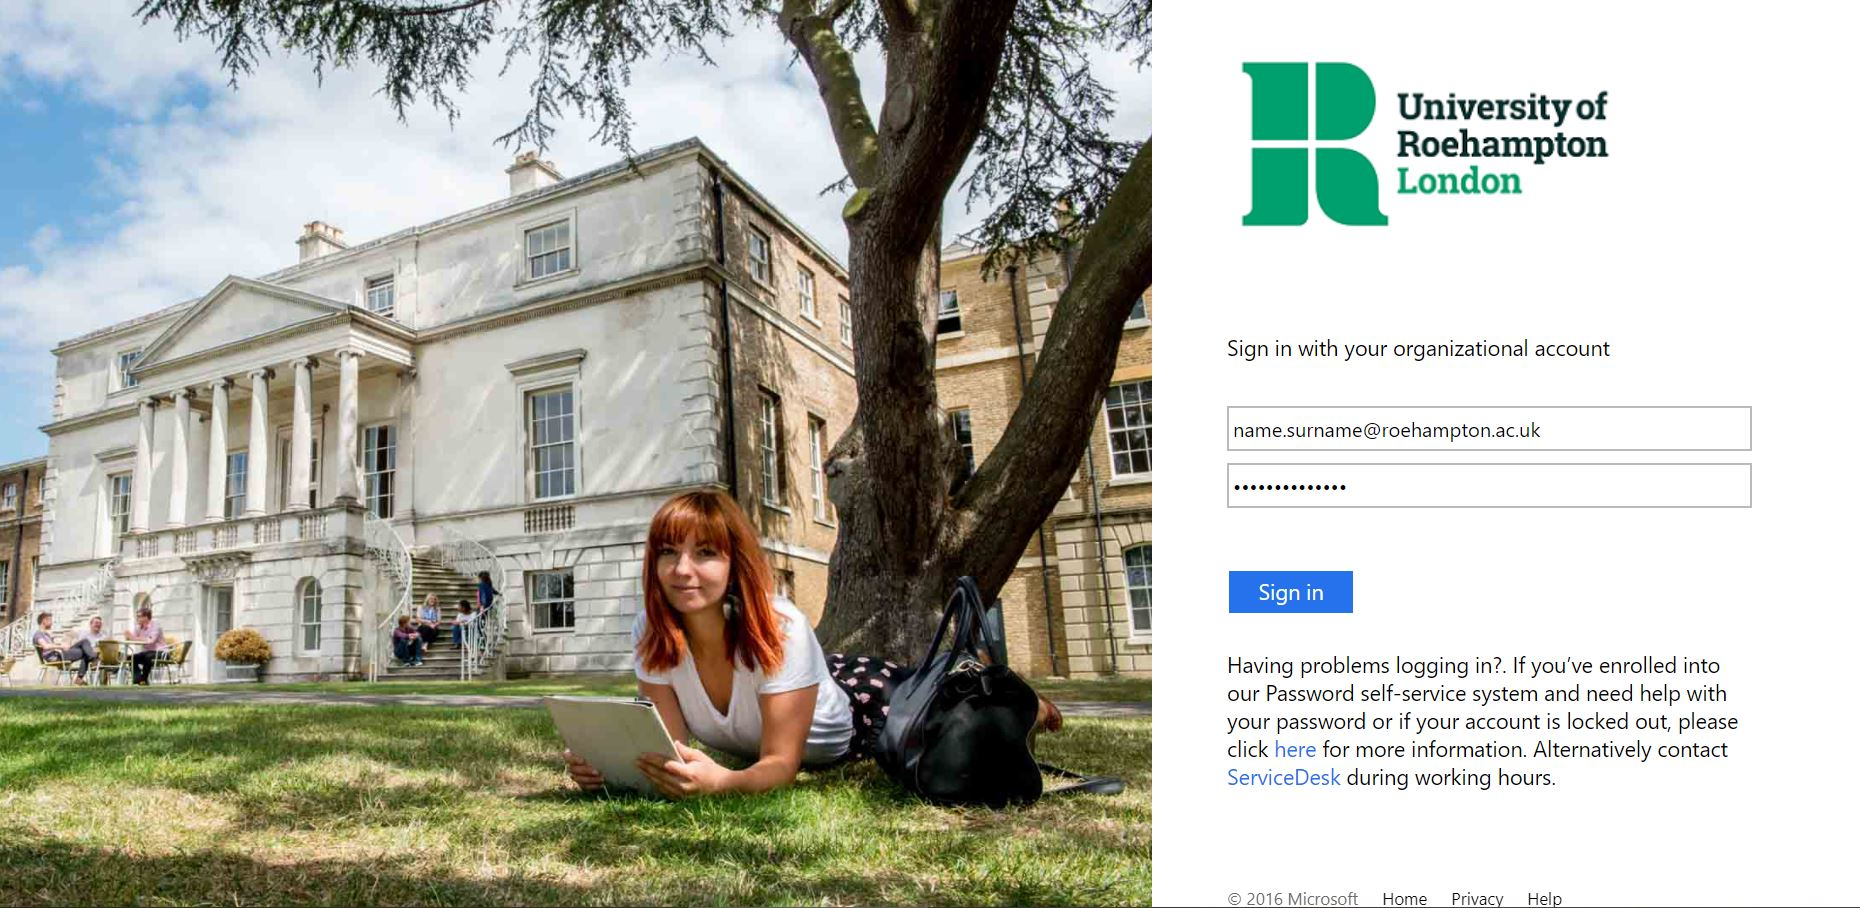 Log in with your Roehampton credentials